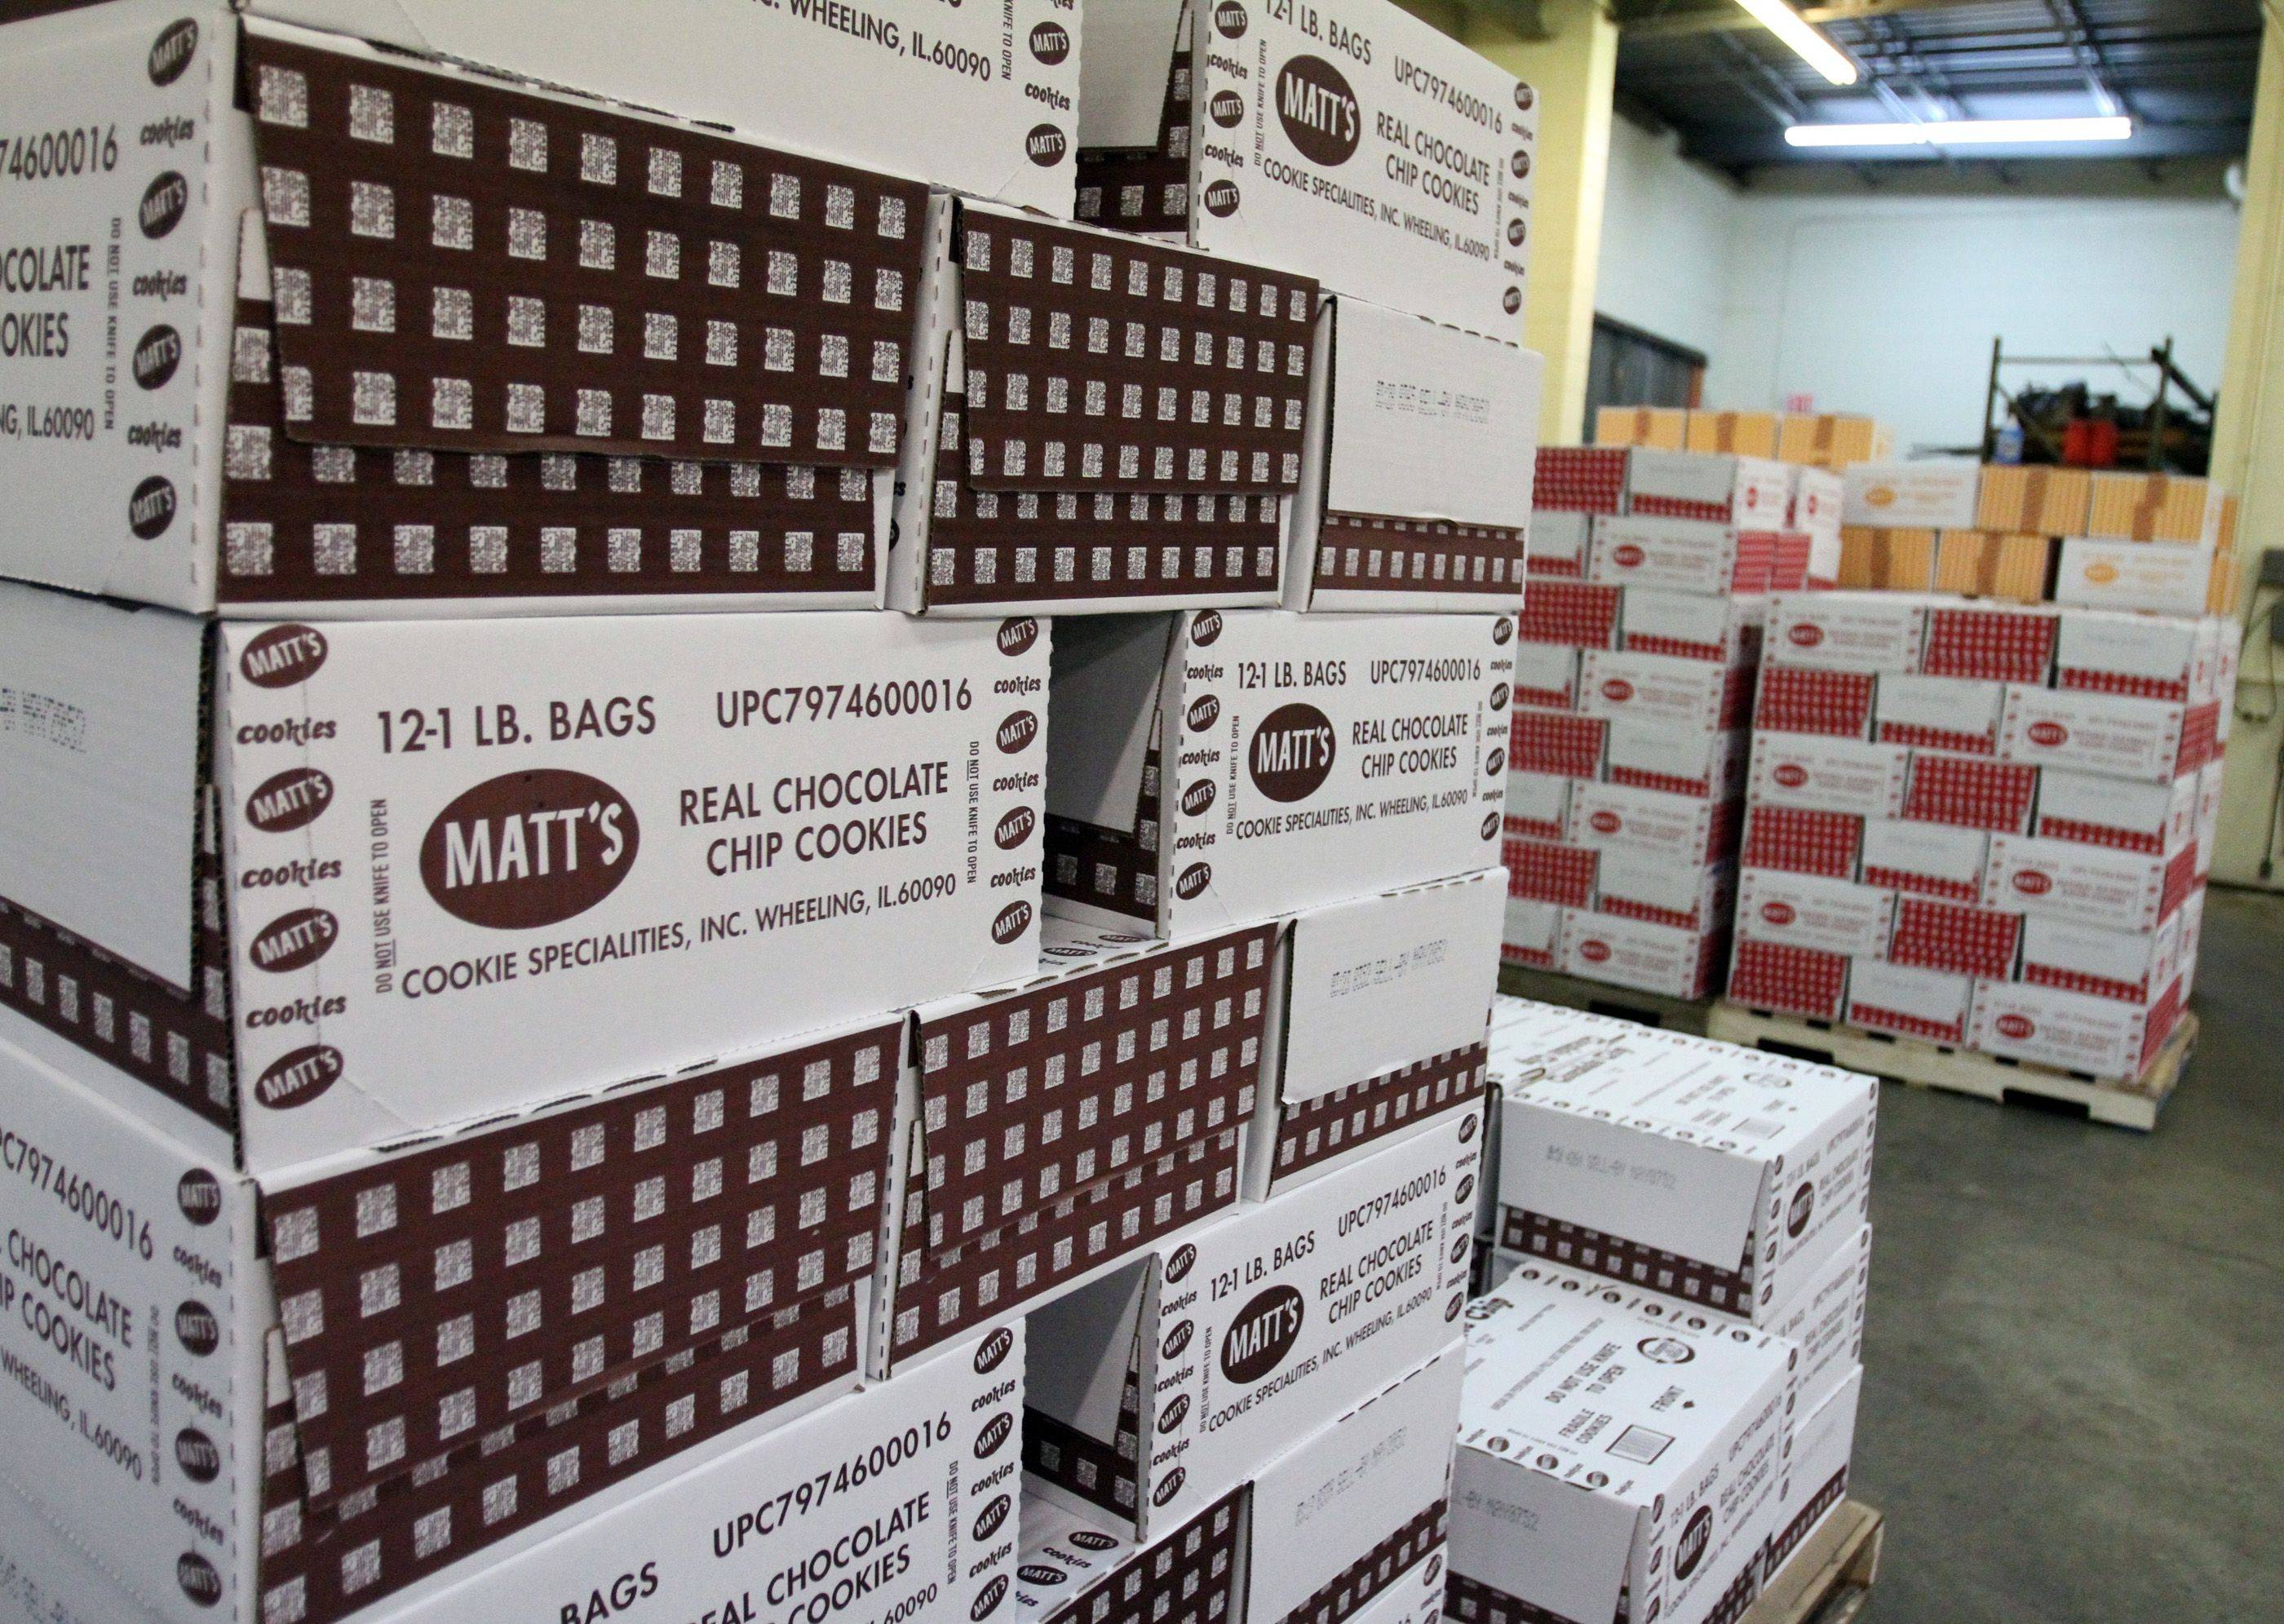 Matt's Cookies was founded in Wheeling in 1980 and makes 25,000 pounds of cookies each day.